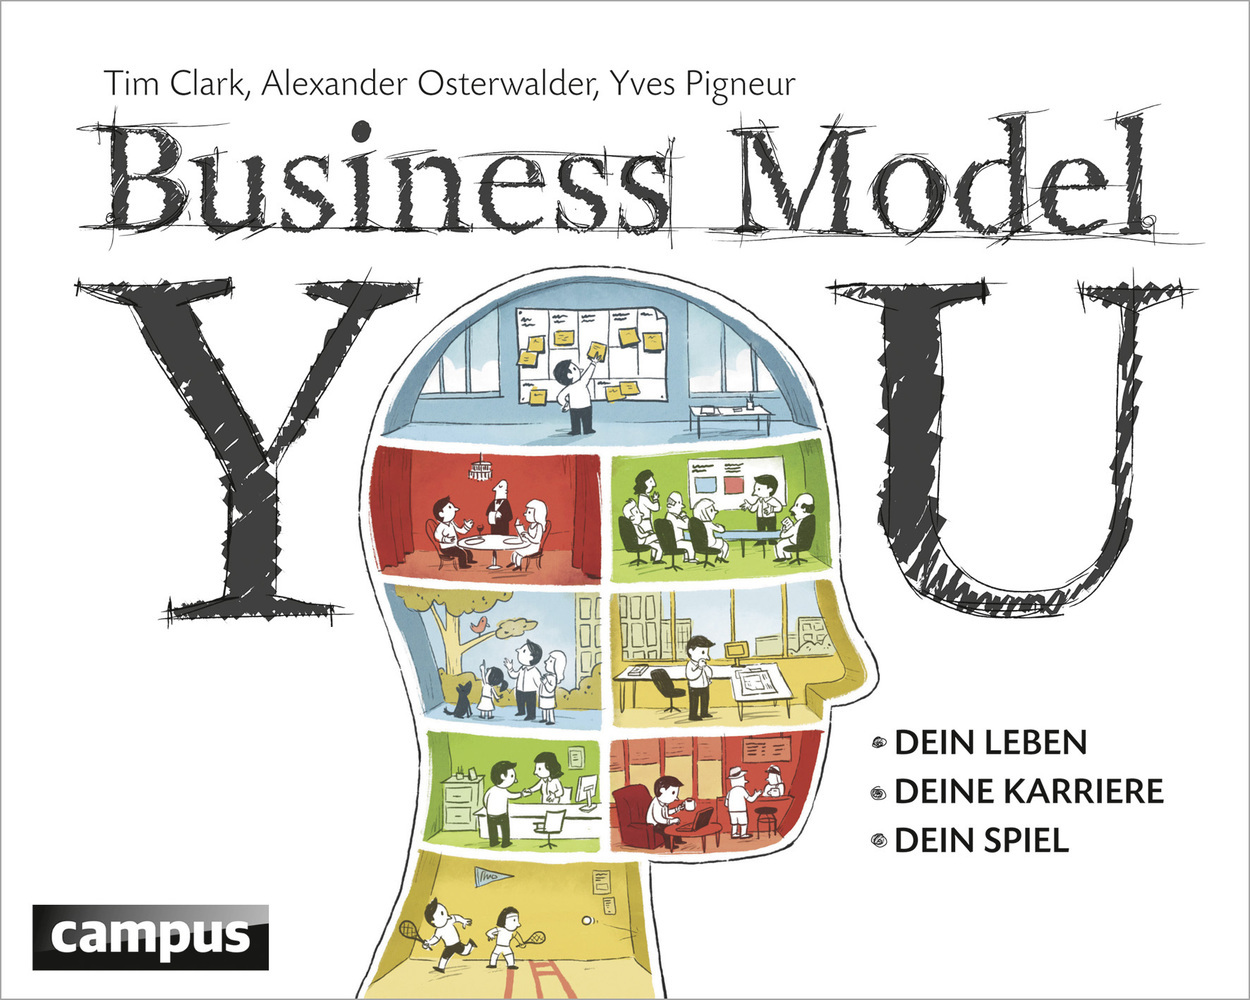 Business Model You als Buch von Tim Clark, Alexander Osterwalder, Yves Pigneur